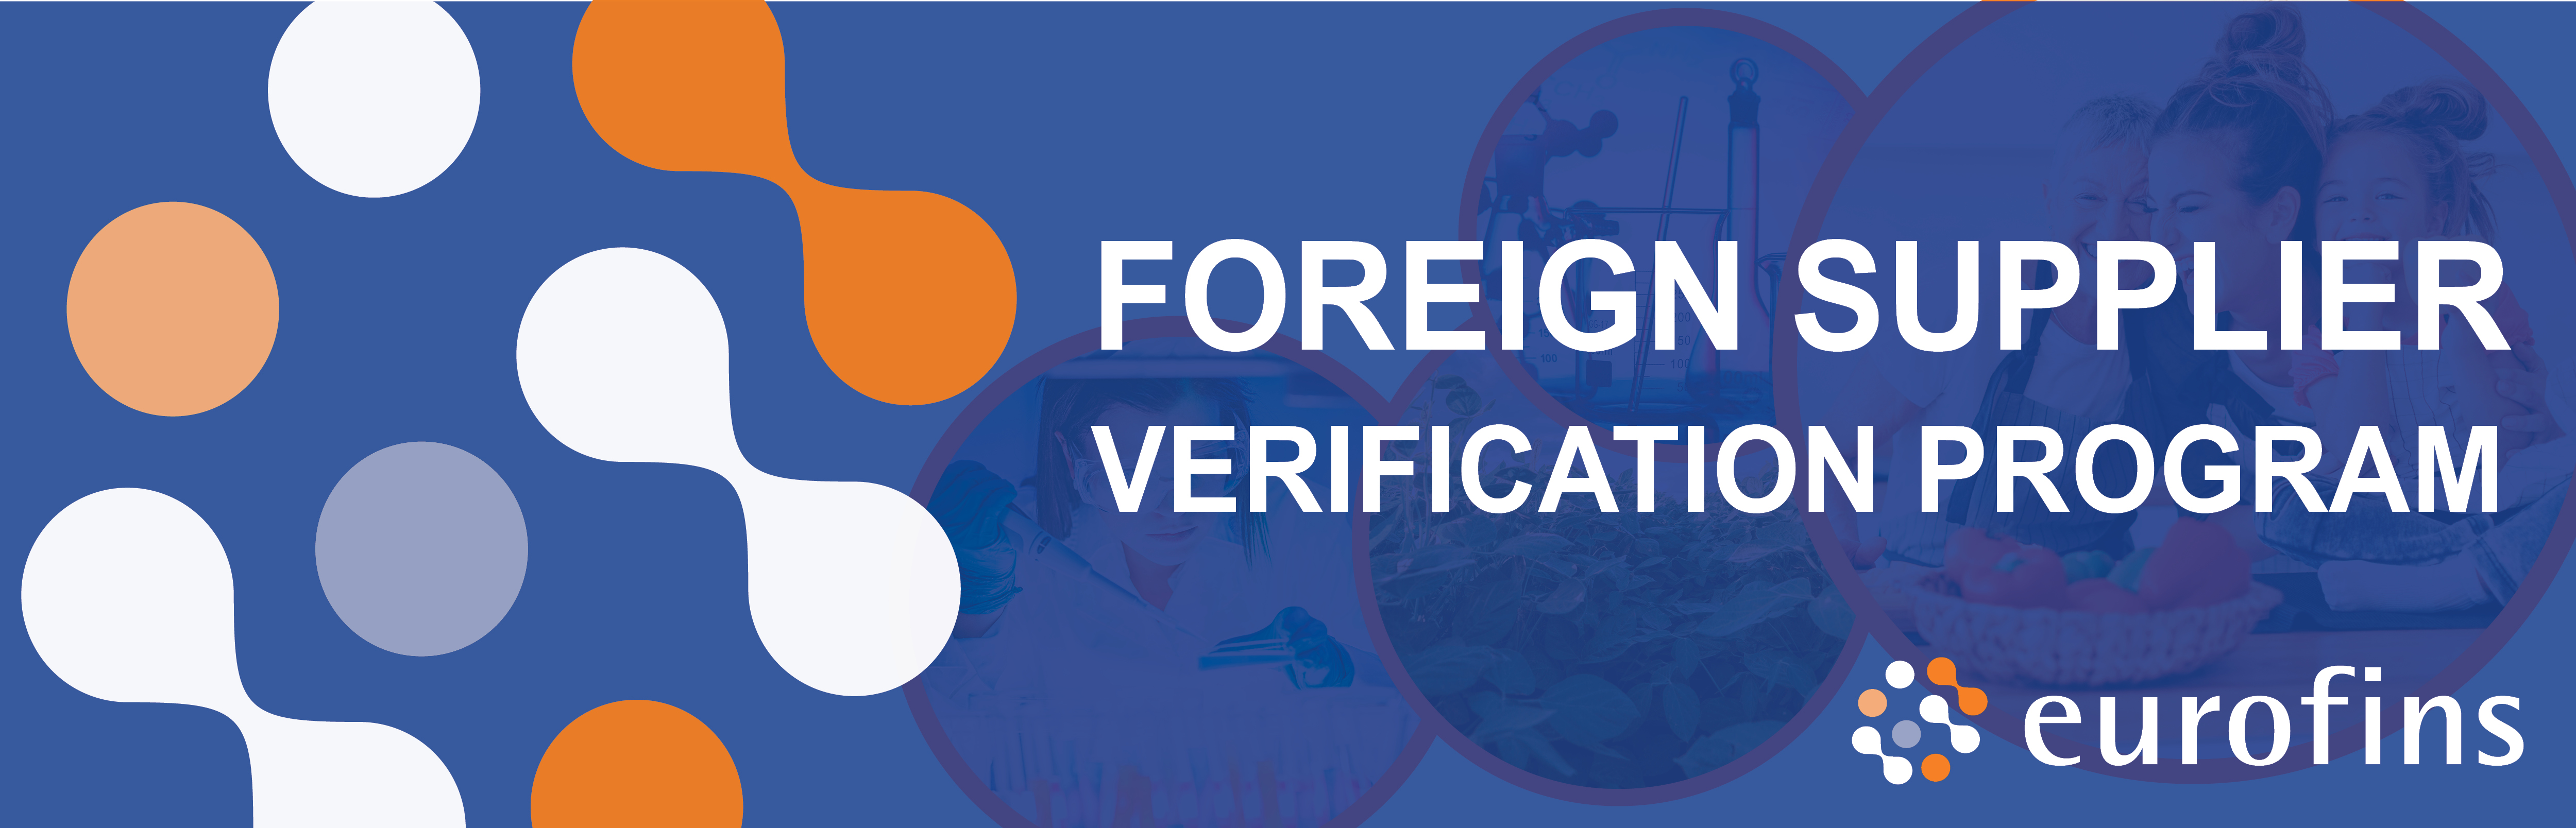 Foreign Supplier Verification Programs